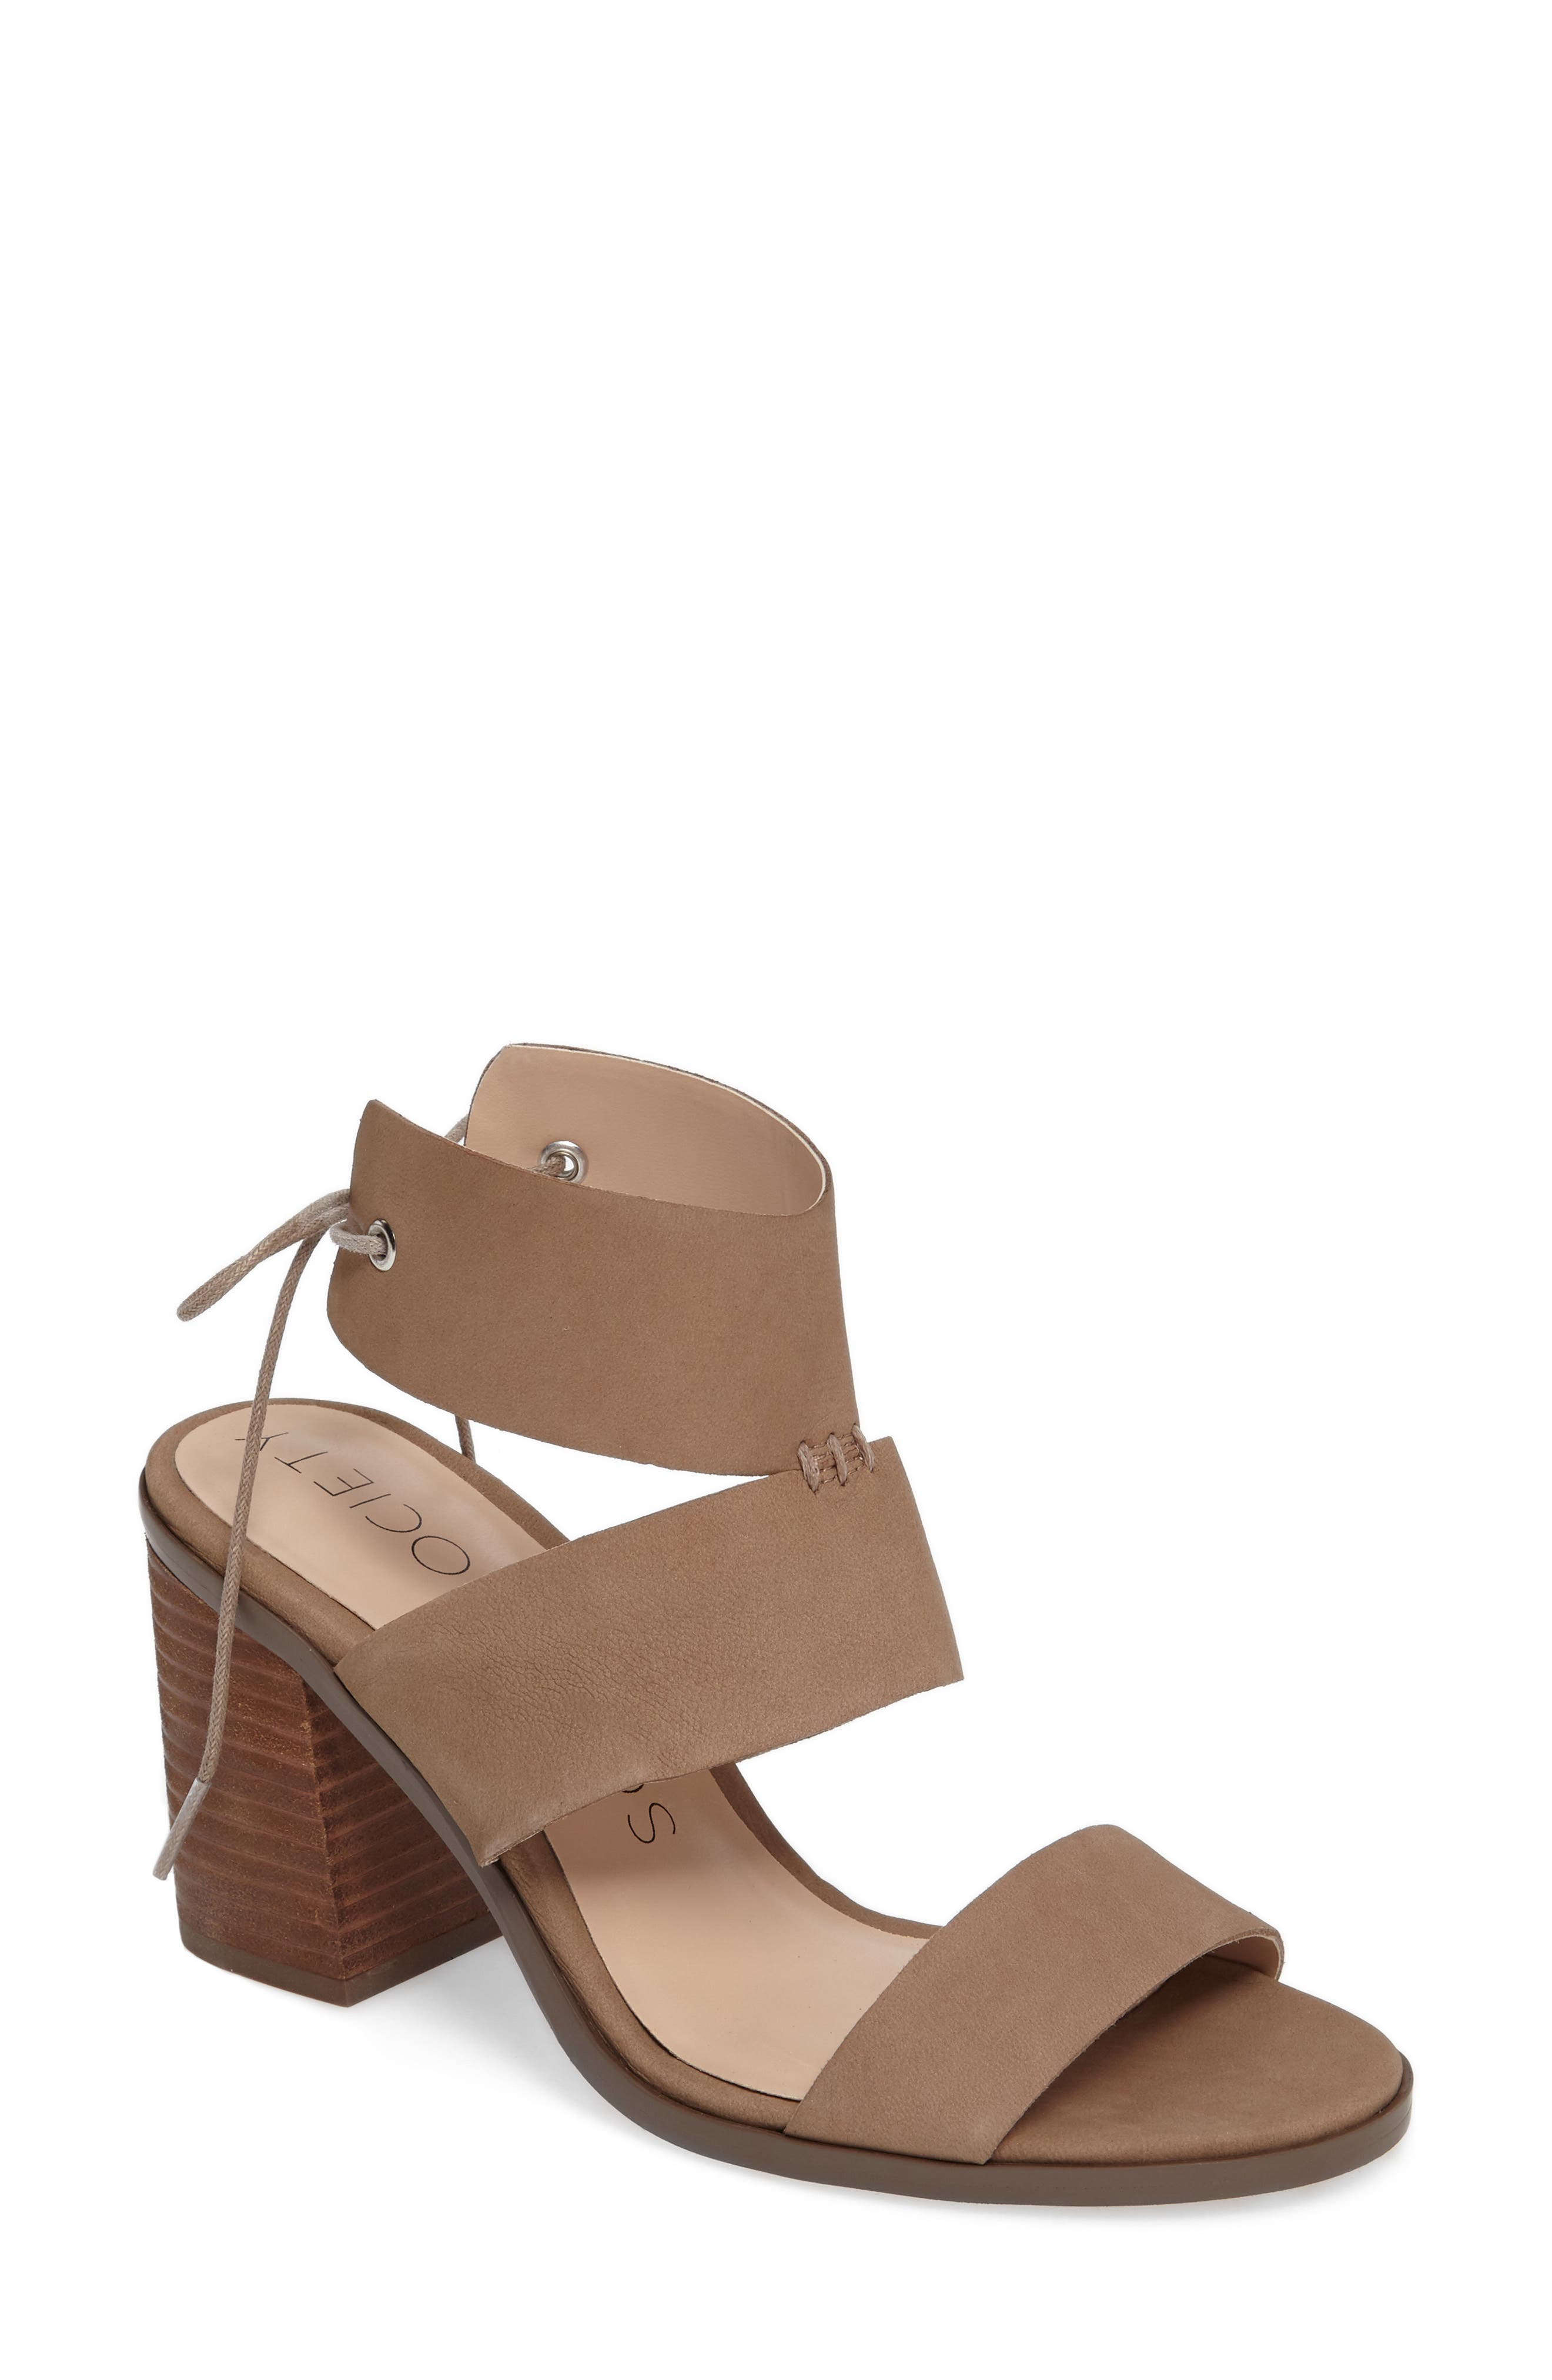 Alternate Image 1 Selected - Sole Society Hayden Sandal (Women)